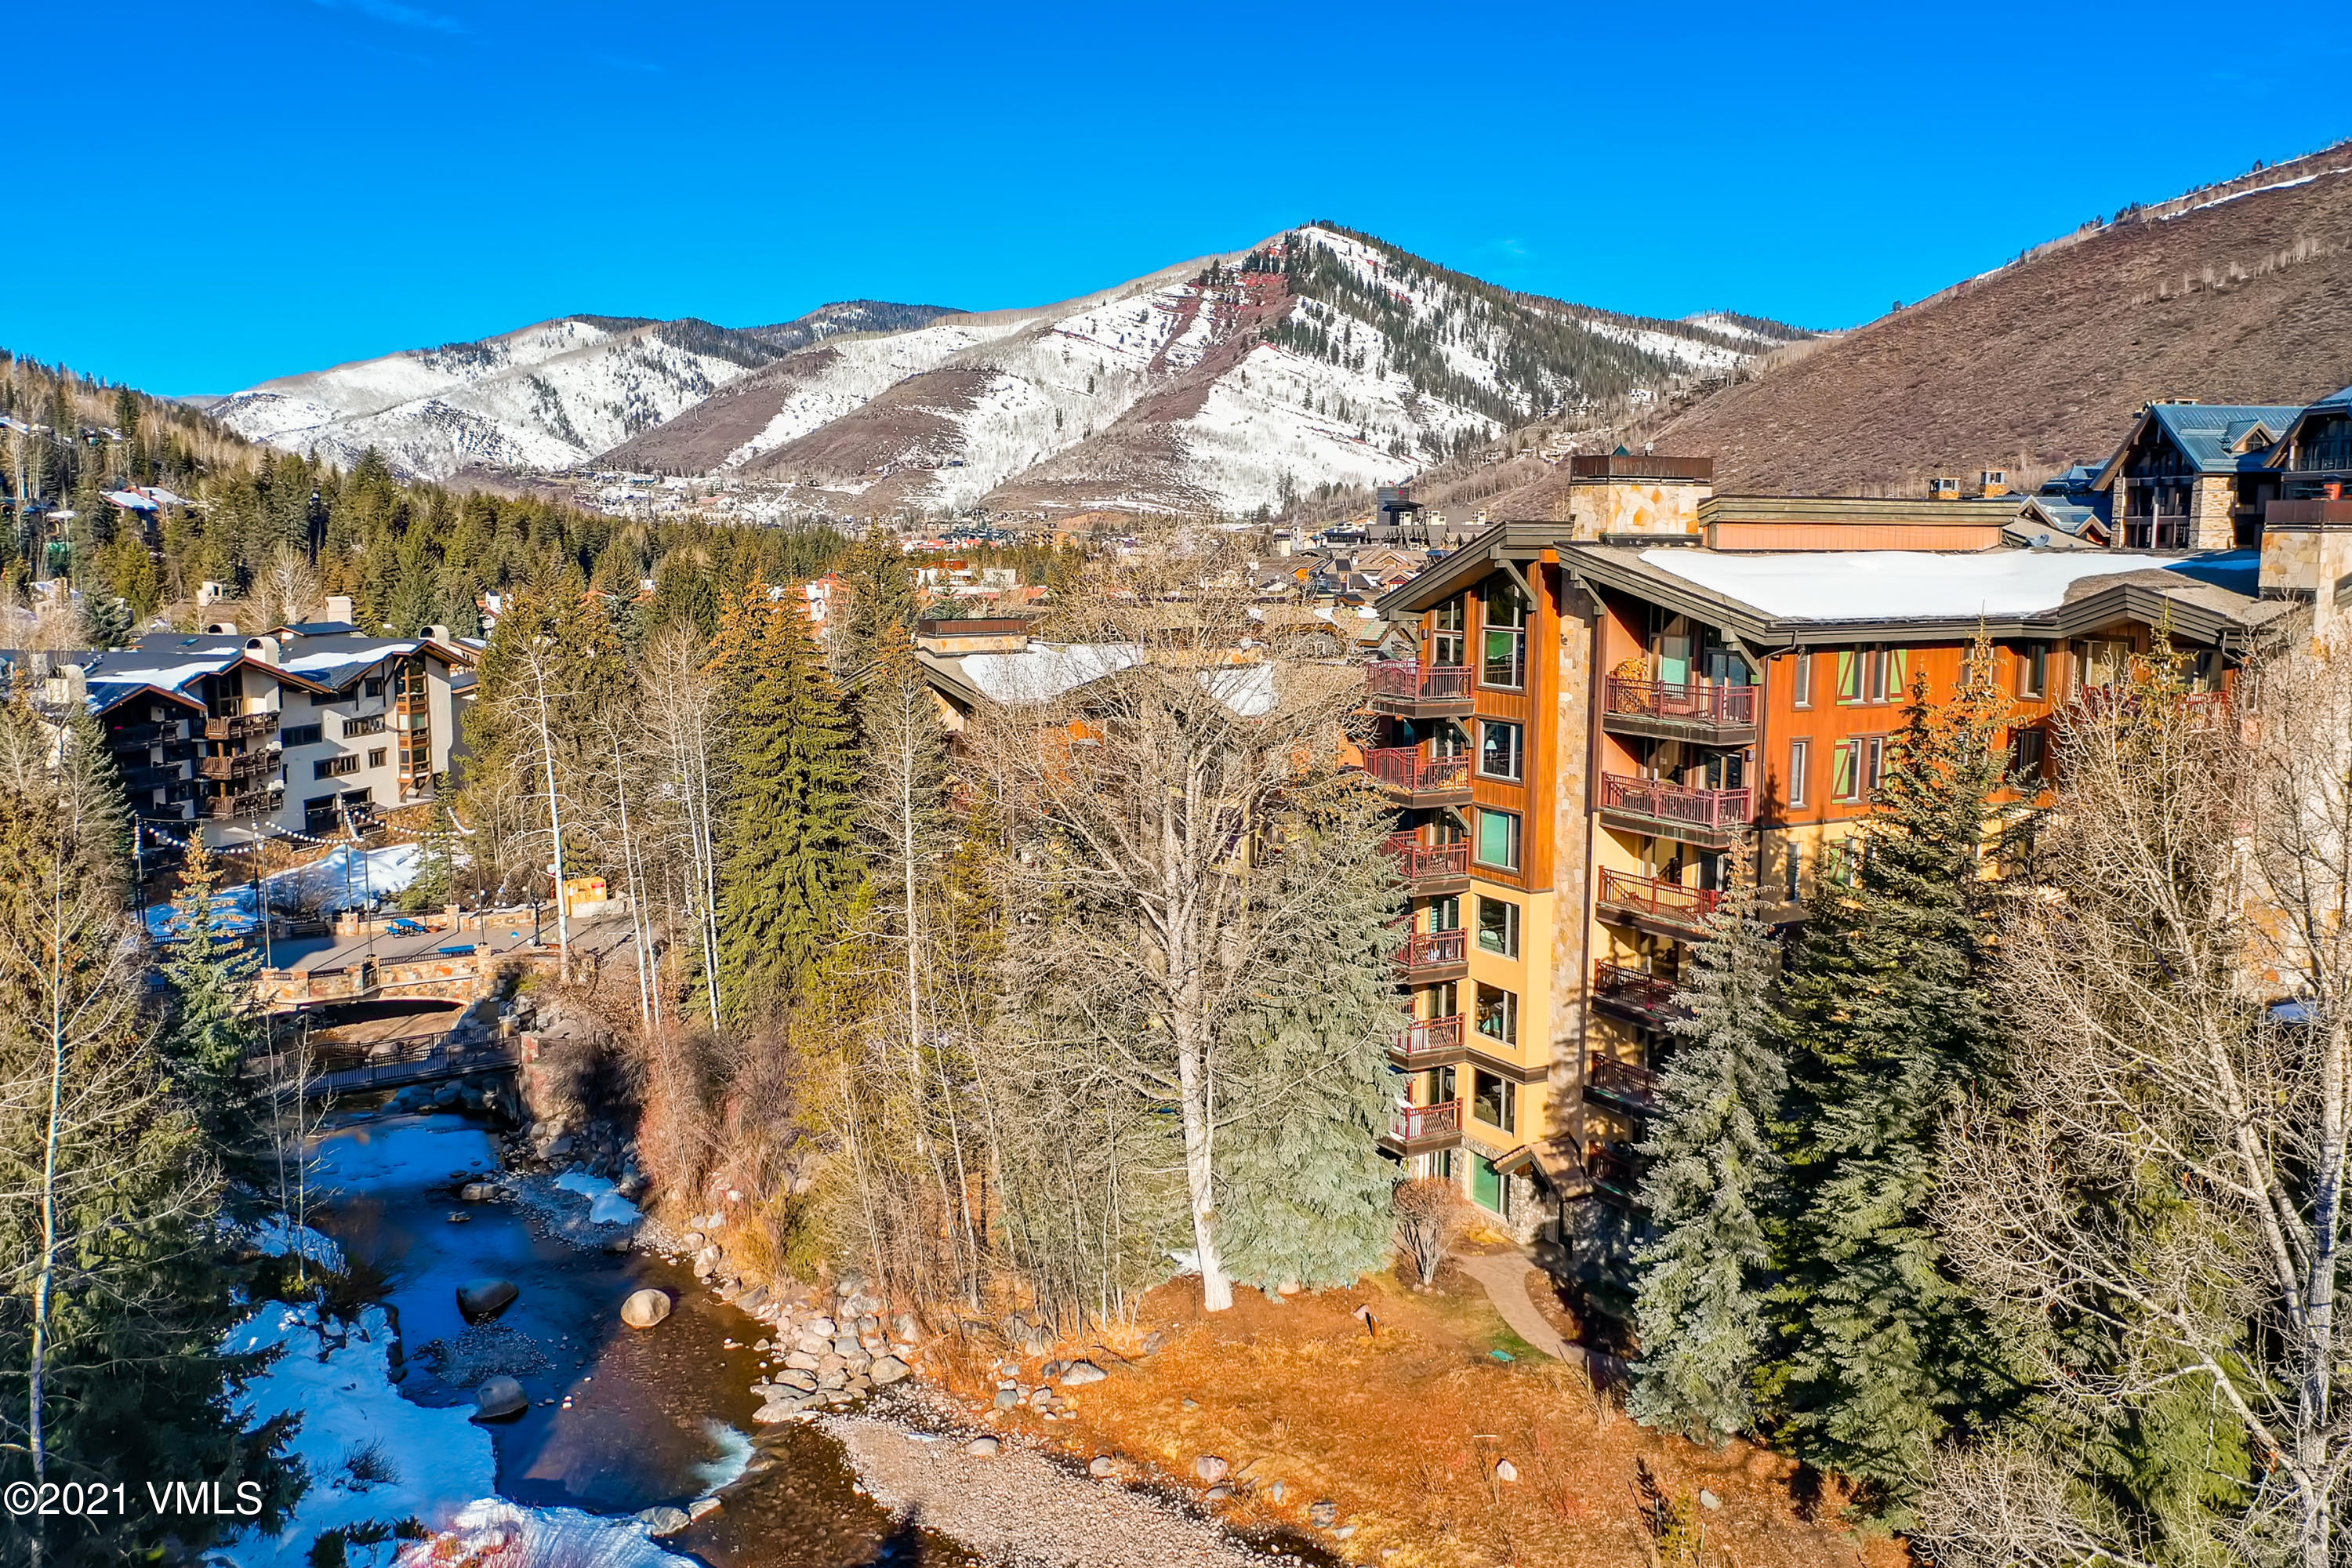 This premier, 3-bedroom, Vail residence is situated in a location to boast about! Whether you are heading out to hike the mountain, visit award winning restaurants, or to enjoy the Vail Farmers Market, you'll arrive within minutes from your Village Center condo.During the summer, you're just as likely to catch a glimpse of tourists floating down the creek on innertubes as spotting some enthusiastic fly fishing on the gold medal water. Winter months will have you gazing from the spacious living room over the icy Gore Creek to take in the skiers racing down Golden Peak. The master bedroom features one of the two gas fireplaces as well as its own private balcony. The second bedroom is spacious enough to host two twin beds or bring them together for a second king. On the main level, with its high coffered ceilings, the third bedroom can easily convert from bedroom to office and back again. Not interested in working while in the mountains, an easy remodel could turn this into the ideal bunkroom location.Curious about the details: since installing new appliances, including a Bosch oven and induction cooktop five years ago, this condo has had light owner-only use. Carpets were replaced just months ago, furniture and furnishings are all included down to the silverware. This condo is ready to move into. Just pack your suitcase and enjoy your next Vail vacation in your new condo!